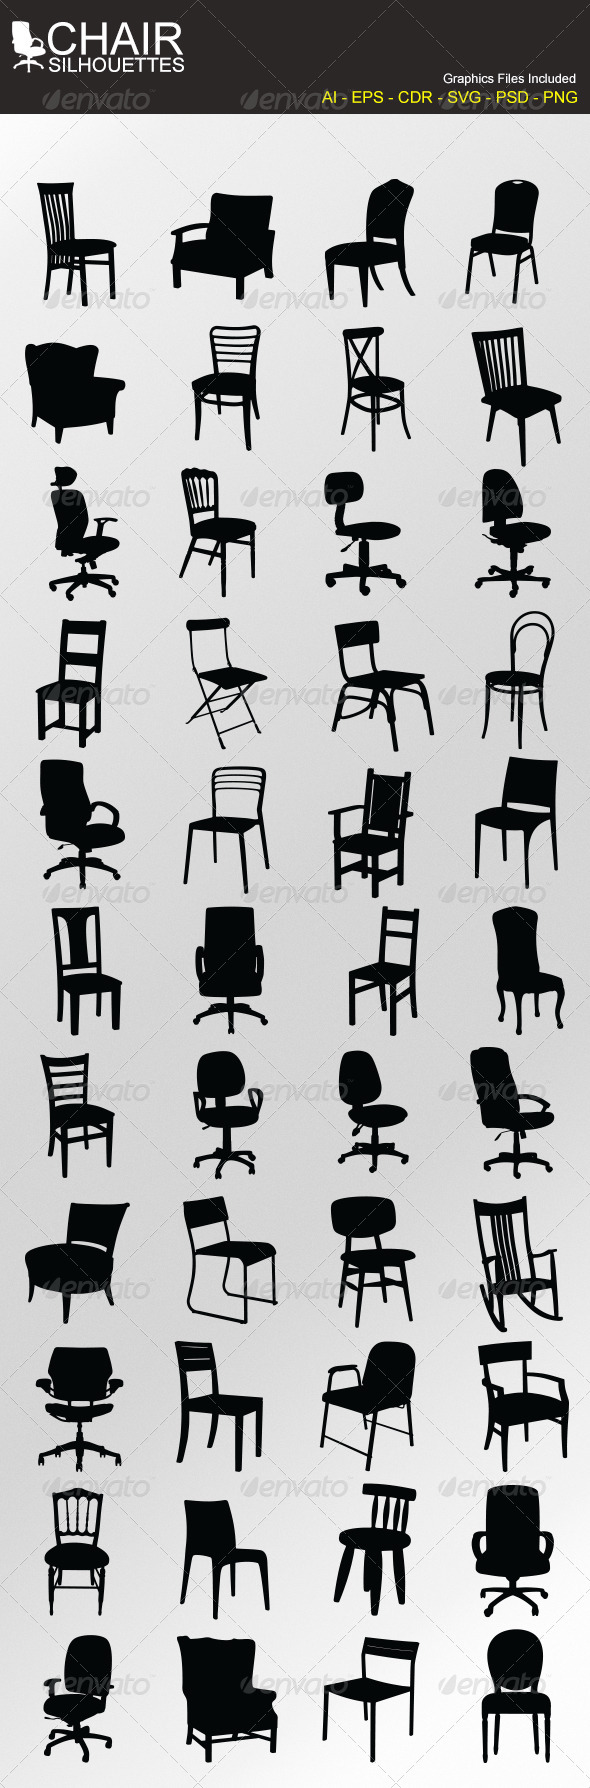 GraphicRiver Chair Silhouettes 5710028